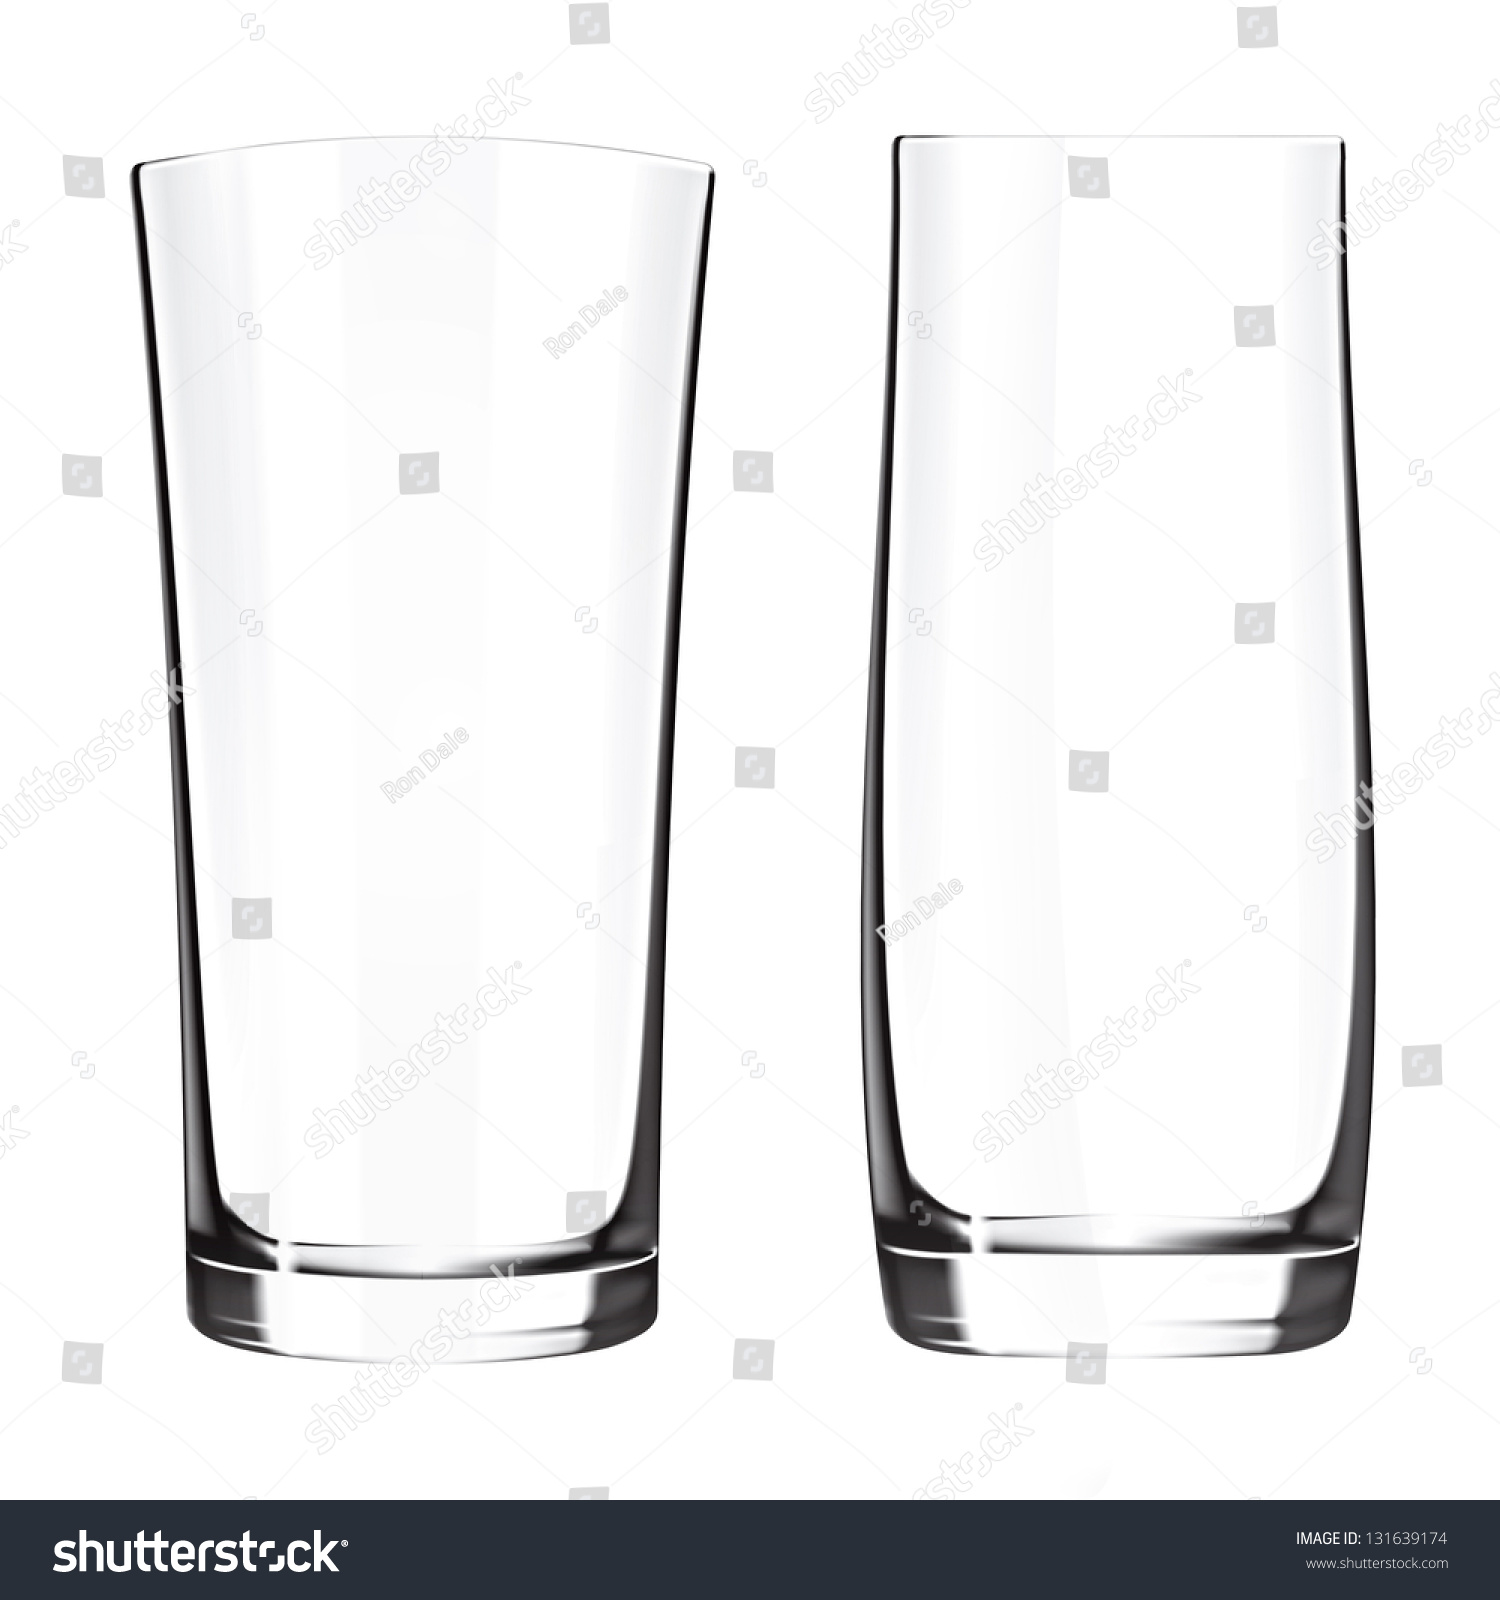 modern empty drinking glasses cup isolated stock illustration  - modern empty drinking glasses cup isolated on white background glass vase